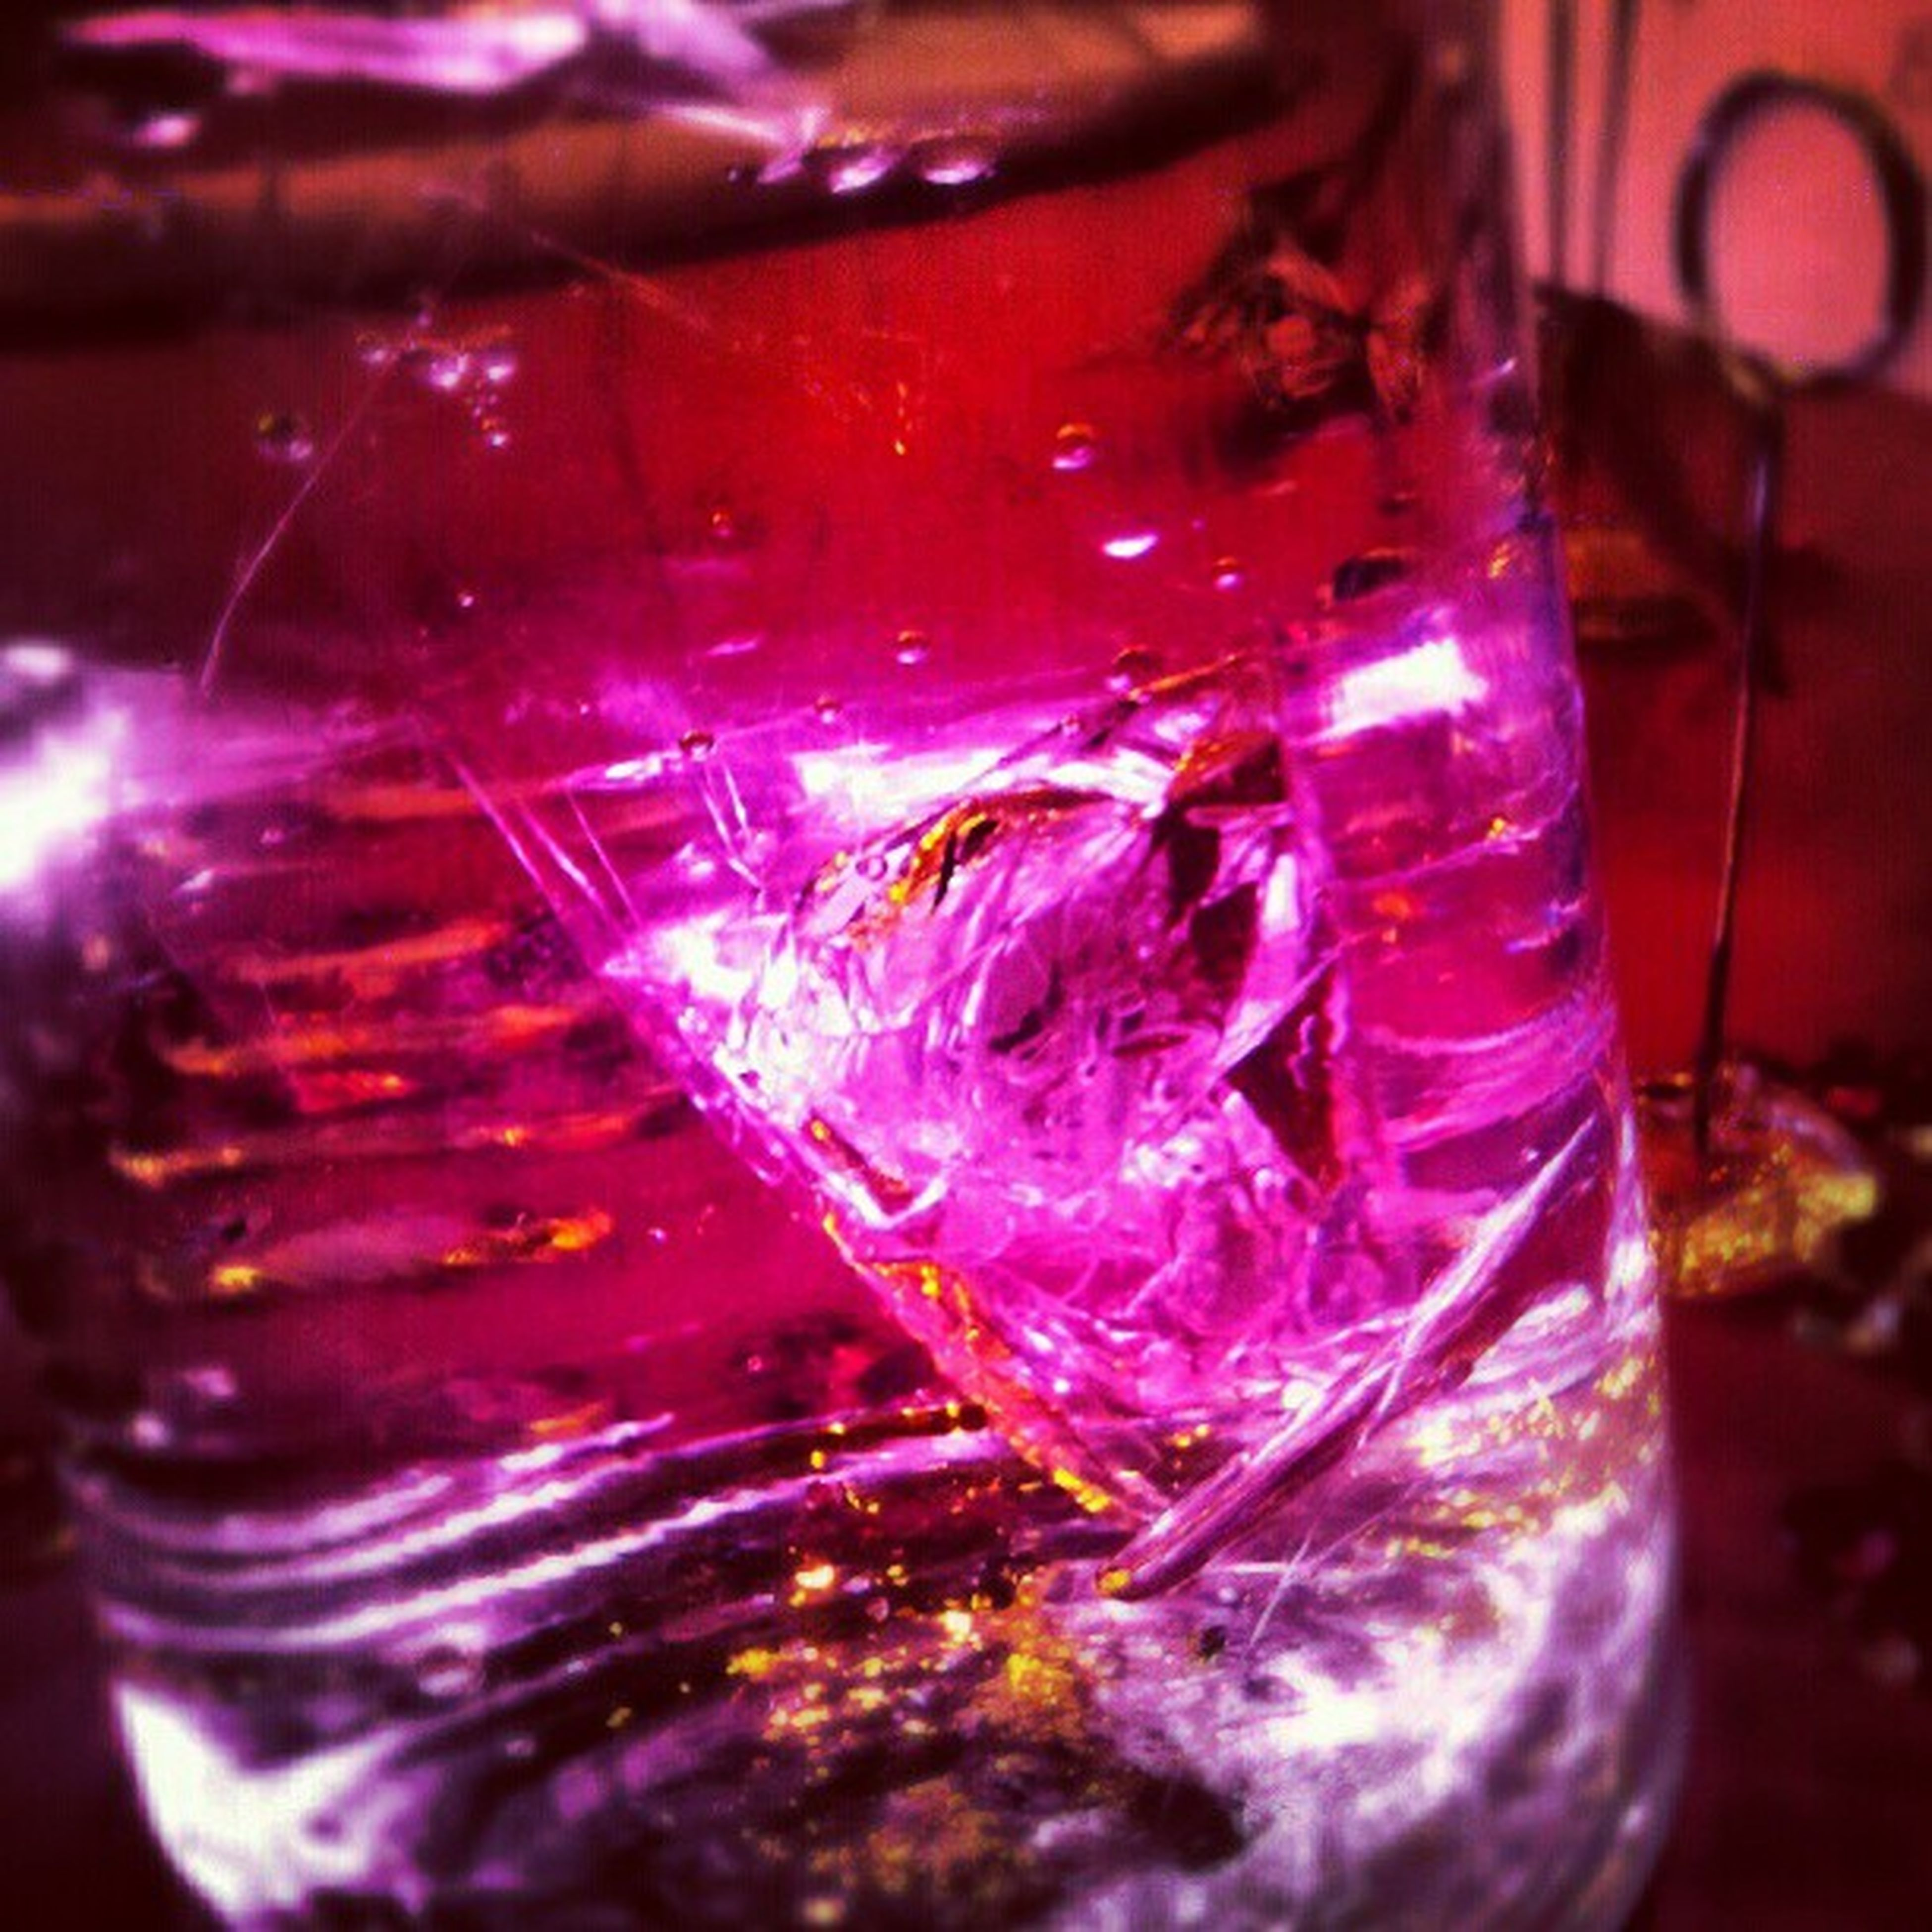 Weird water Glass Gel Recipient Container water pink vignete instagram instafocus instamood instagood dailypics dailyphoto ice ontherocks scotch table sweetxv picoftheday follow4followback follow4follow